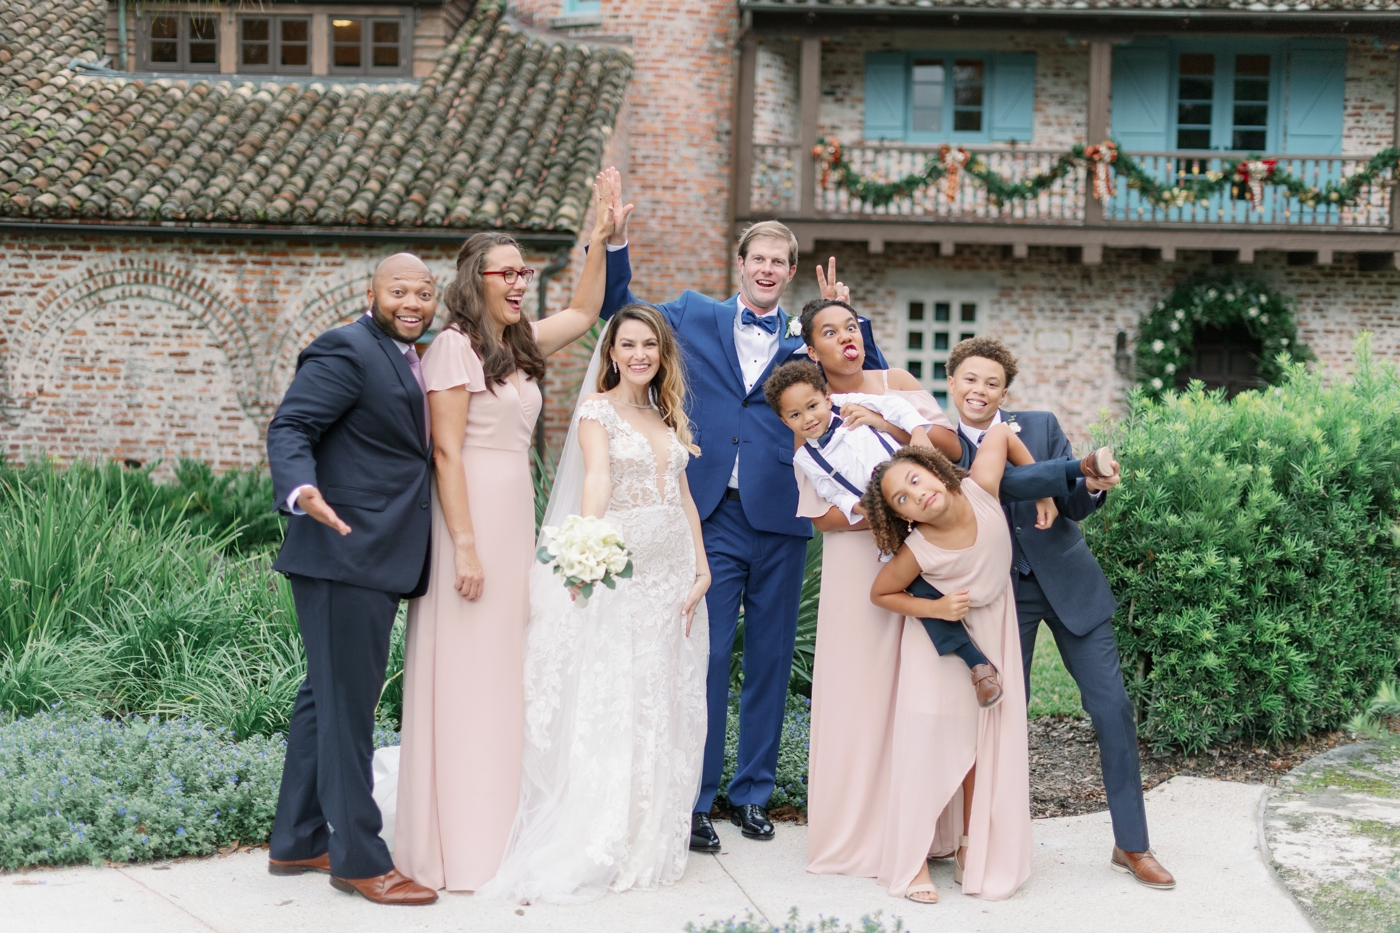 wedding photography ideas for wedding party